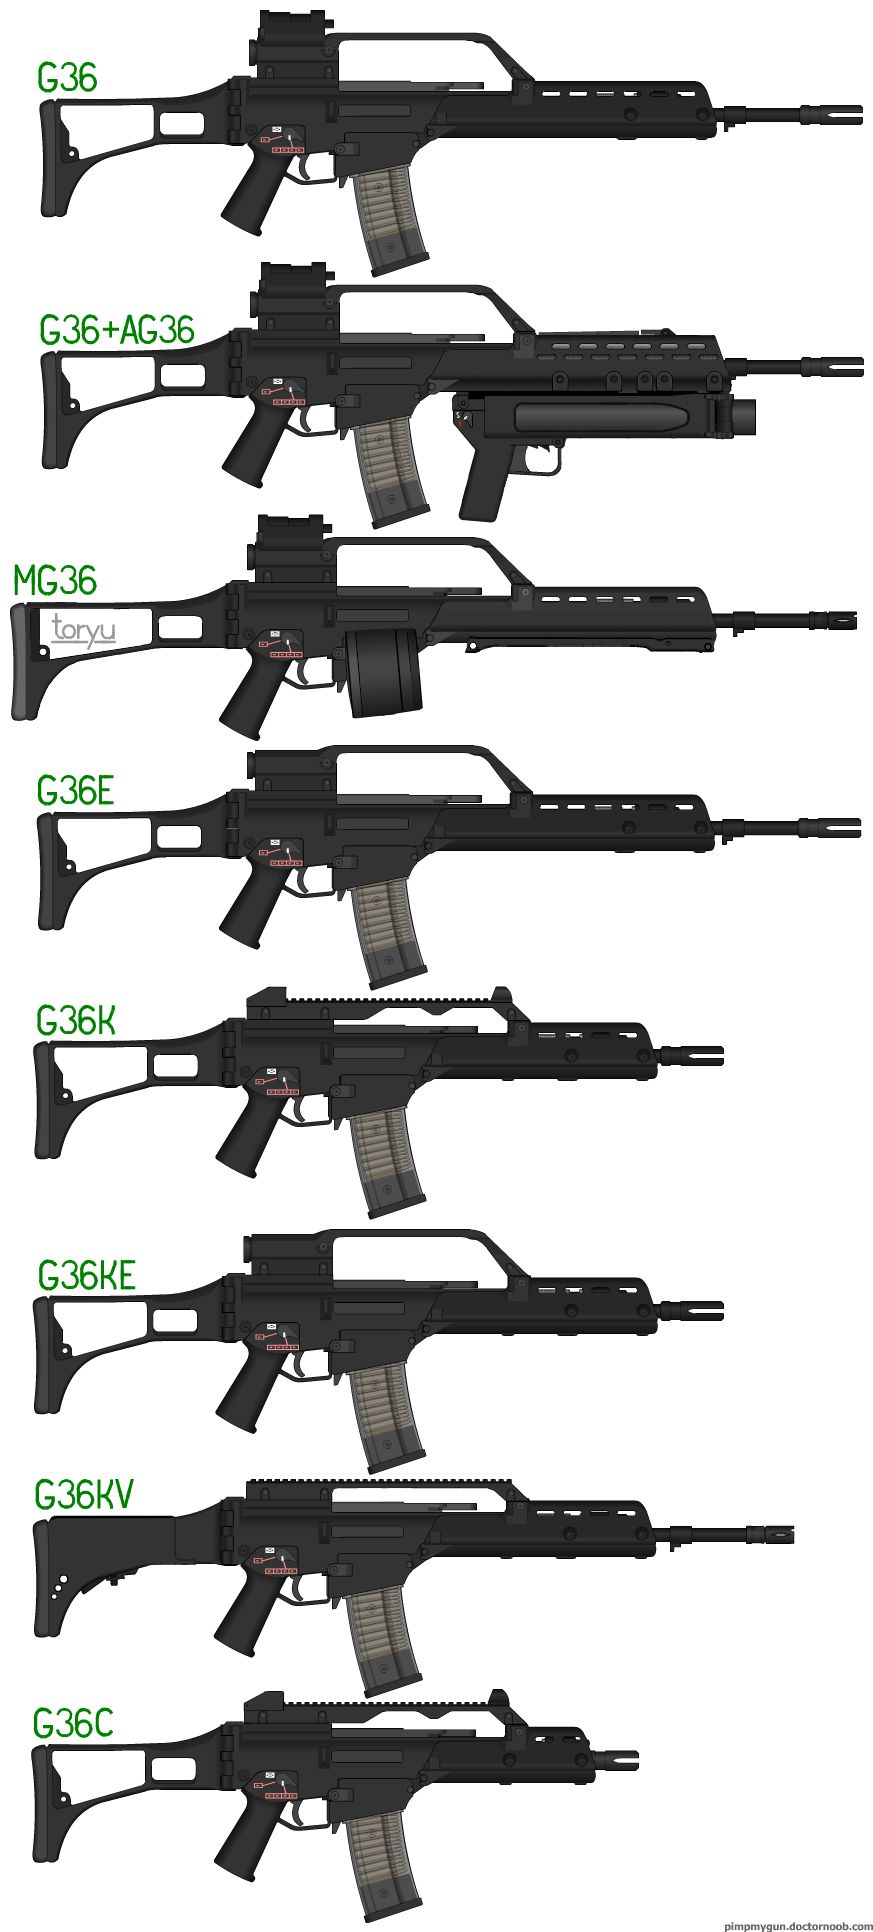 H&k G36 Assault Rifle Variants | ARMS and ARMAMENT | Pinterest ...